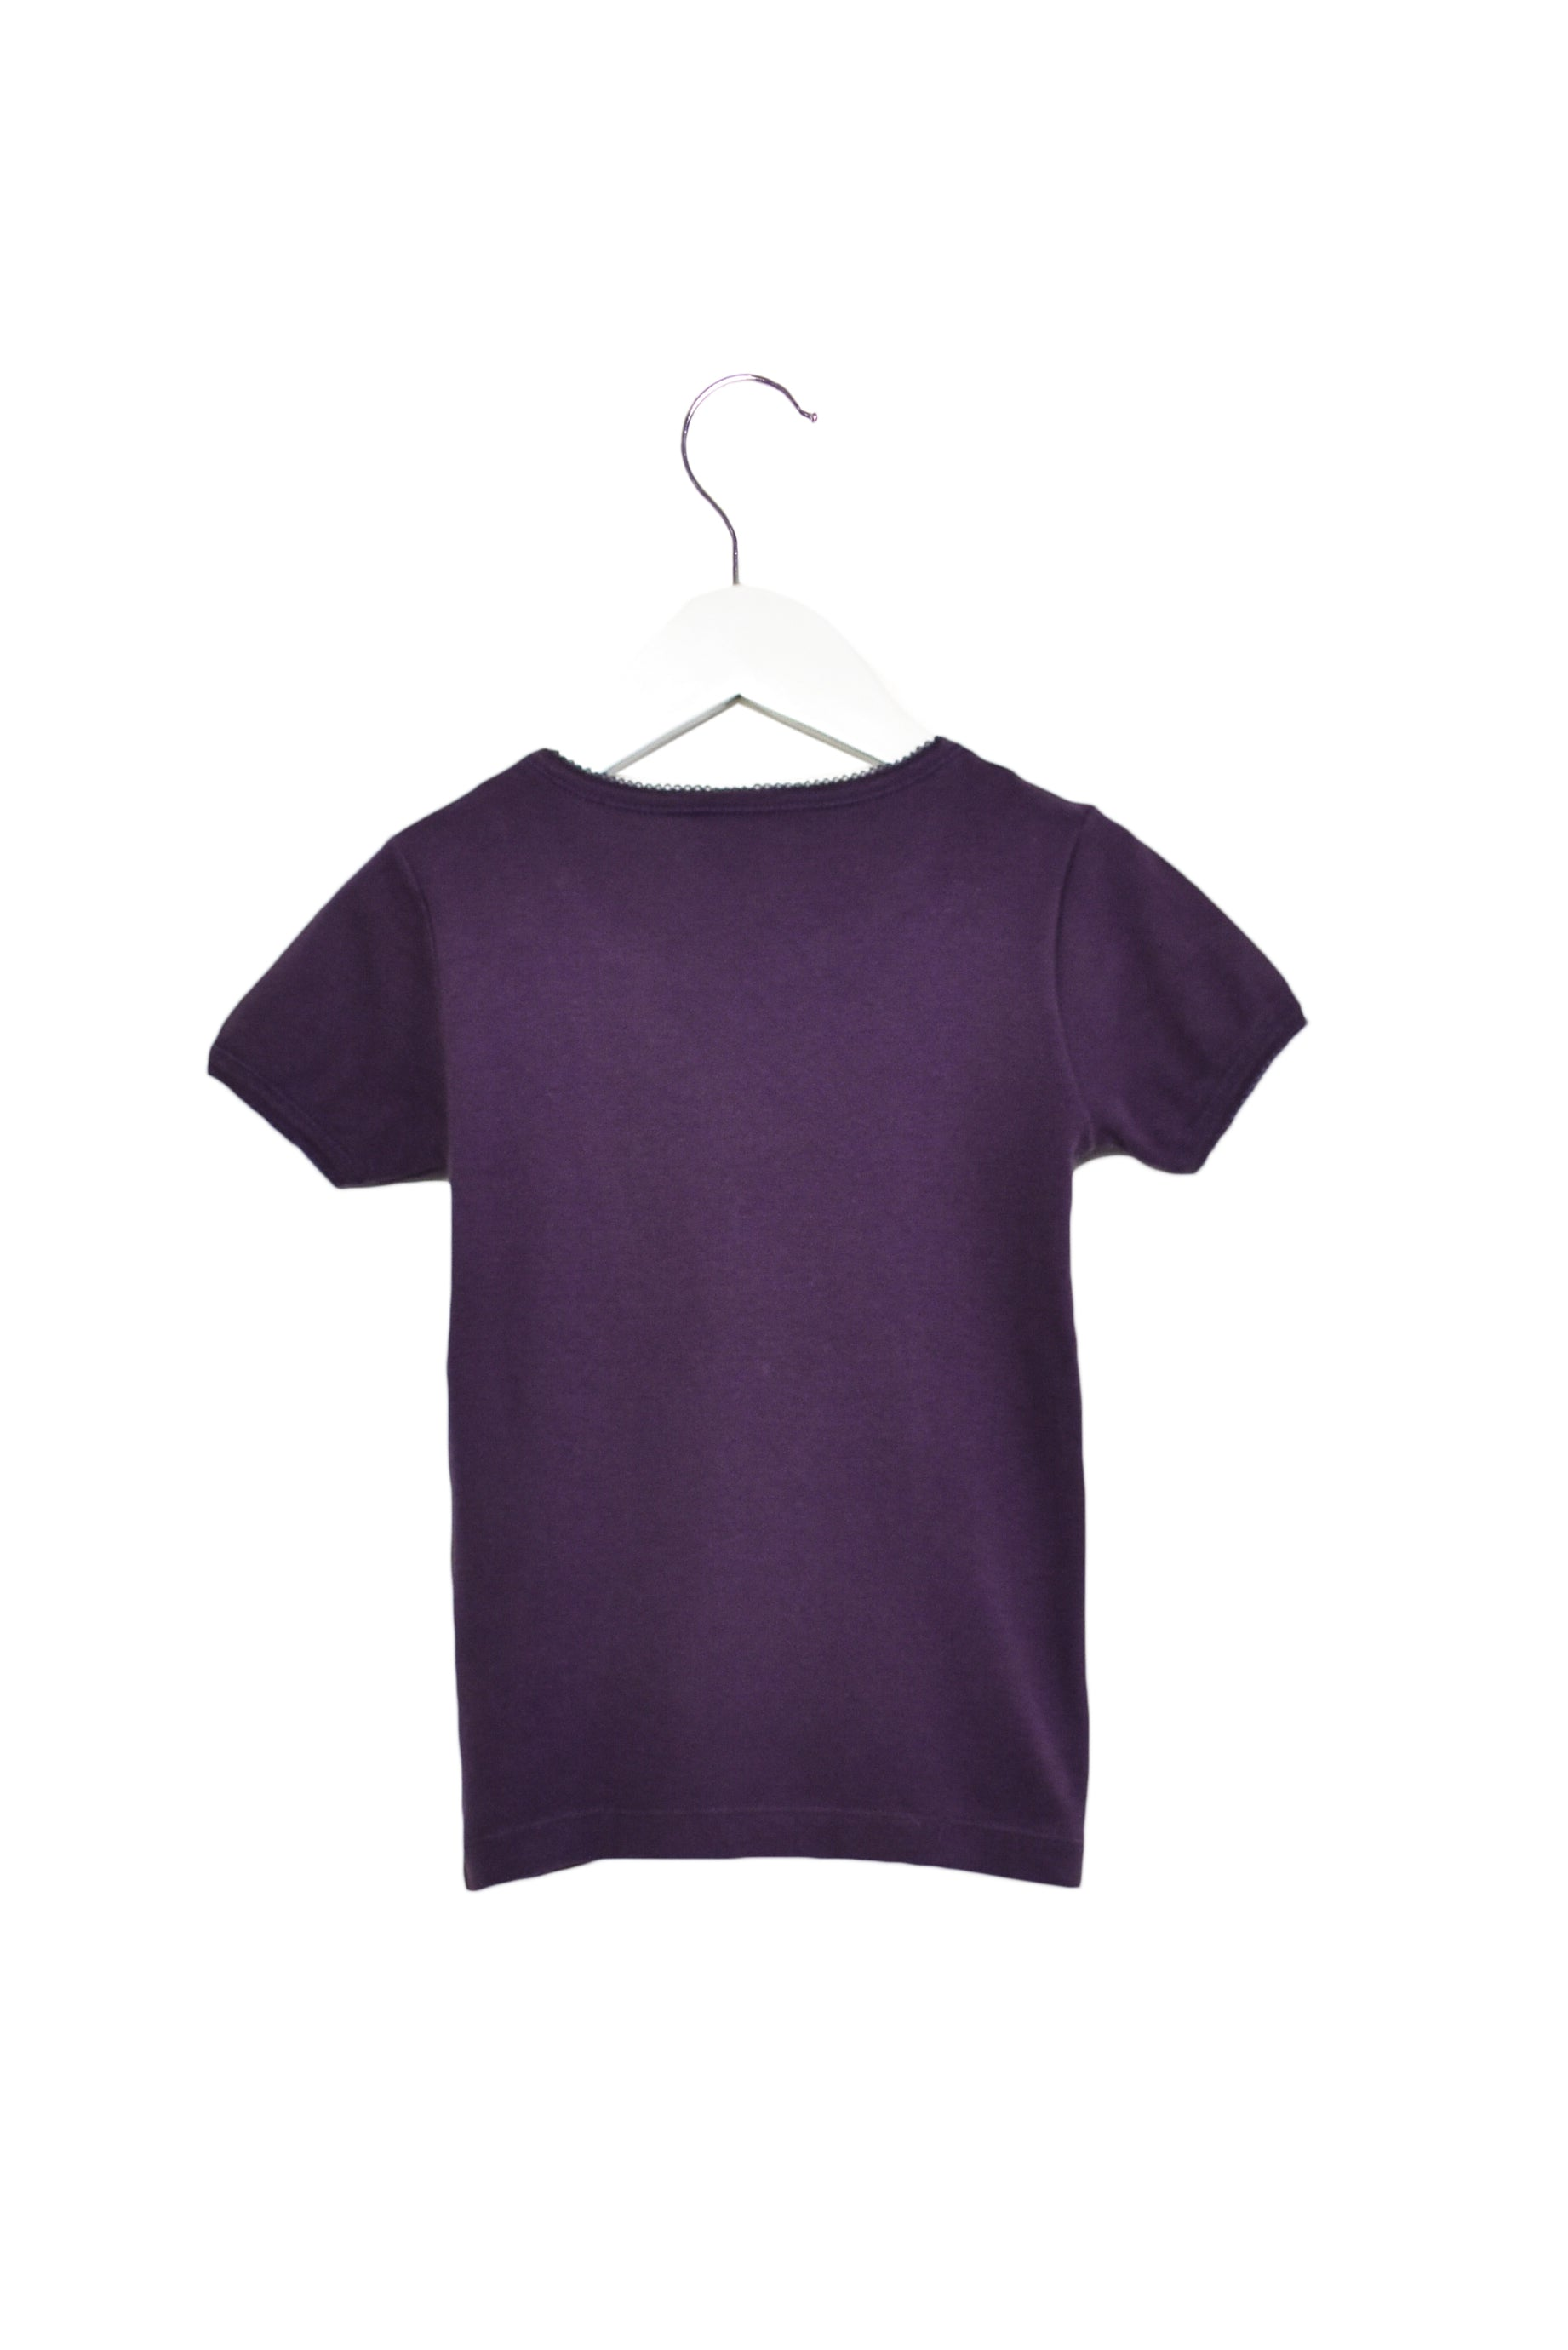 10011899 Petit Bateau Kids ~ T-Shirt 6T at Retykle